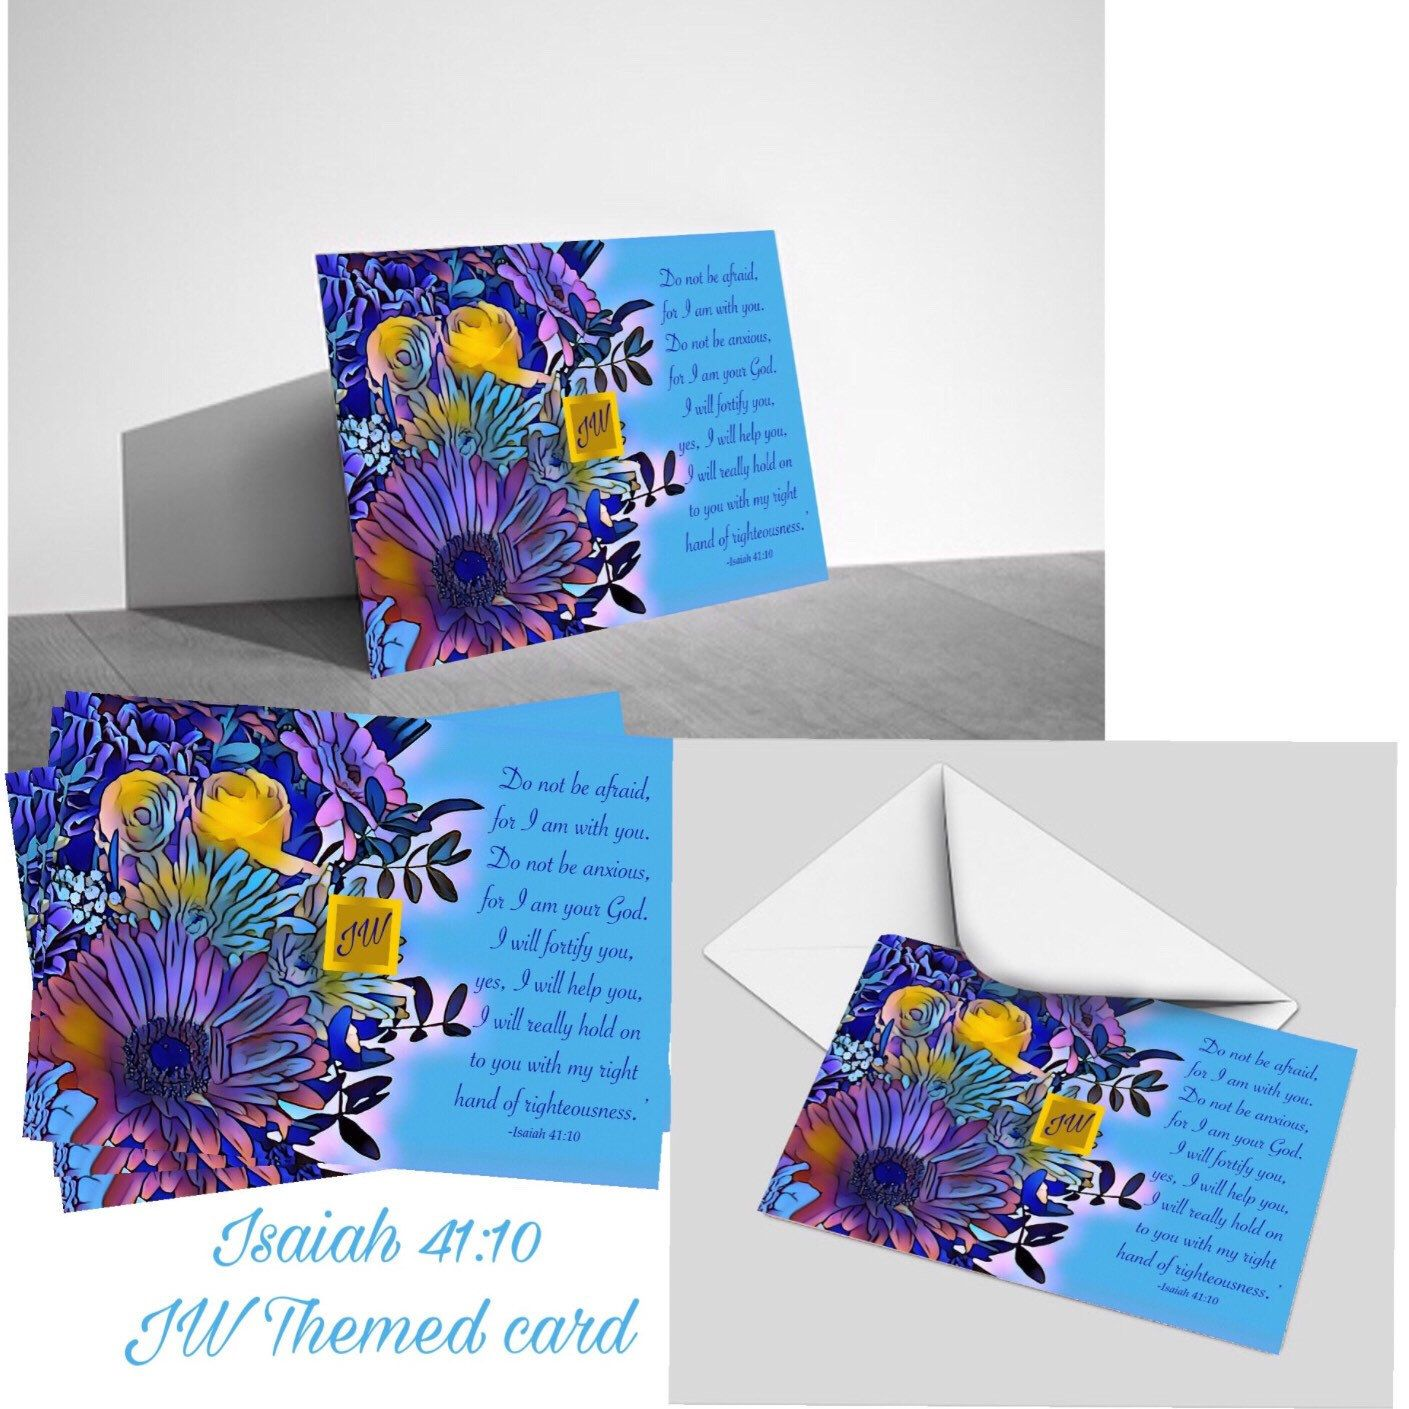 Jw theme cards send youre greetings or an encouraging message to send youre greetings or an encouraging message to friend in m4hsunfo